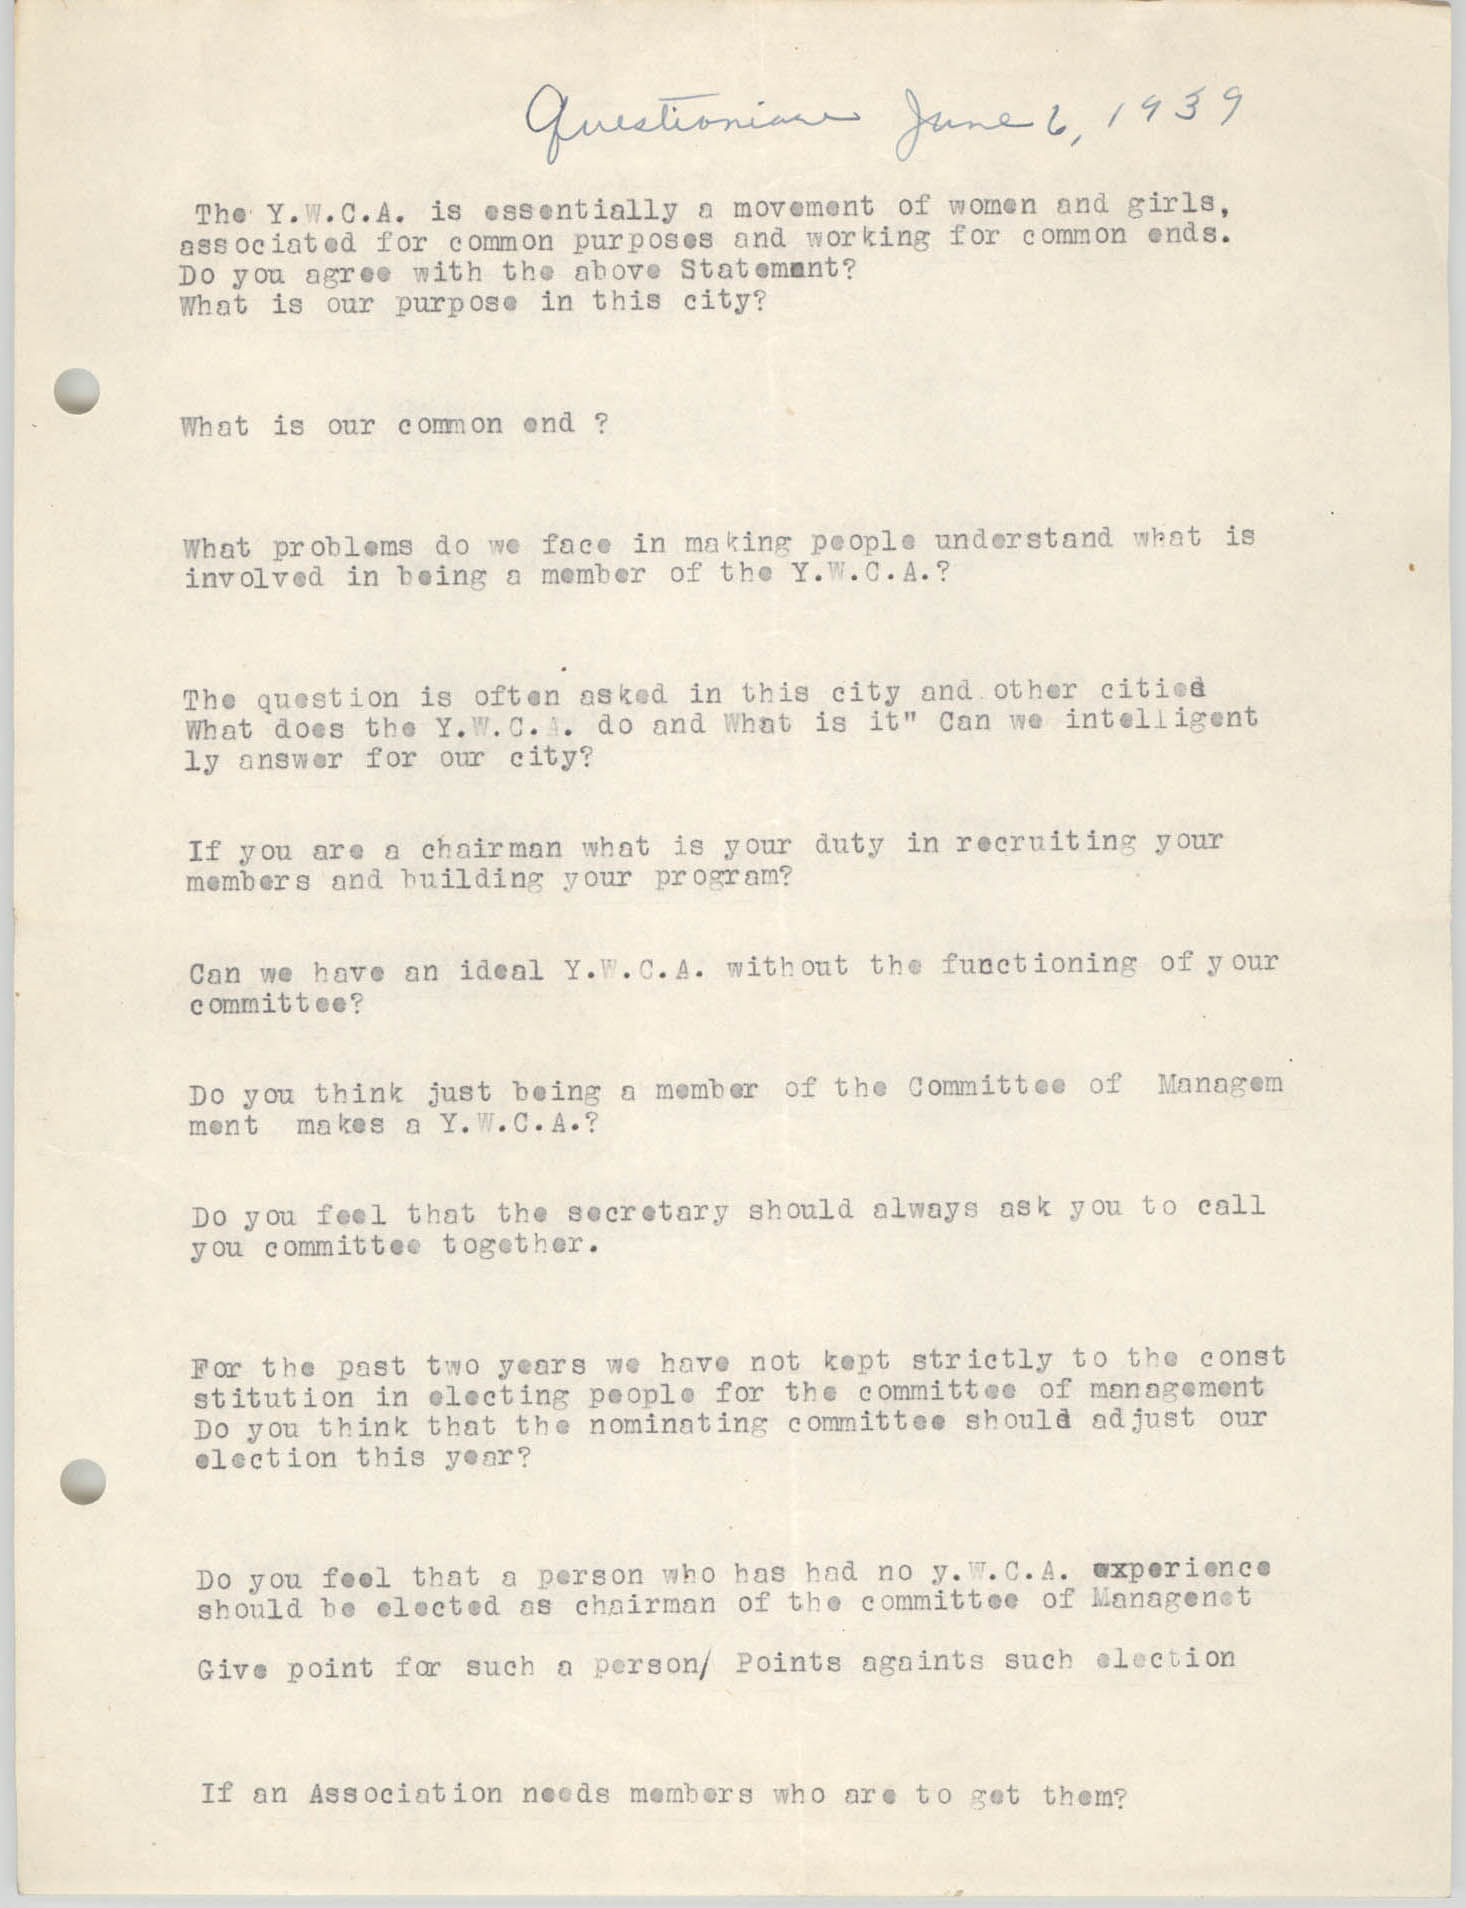 Questionnaire for the Coming Street Y.W.C.A., June 6, 1939